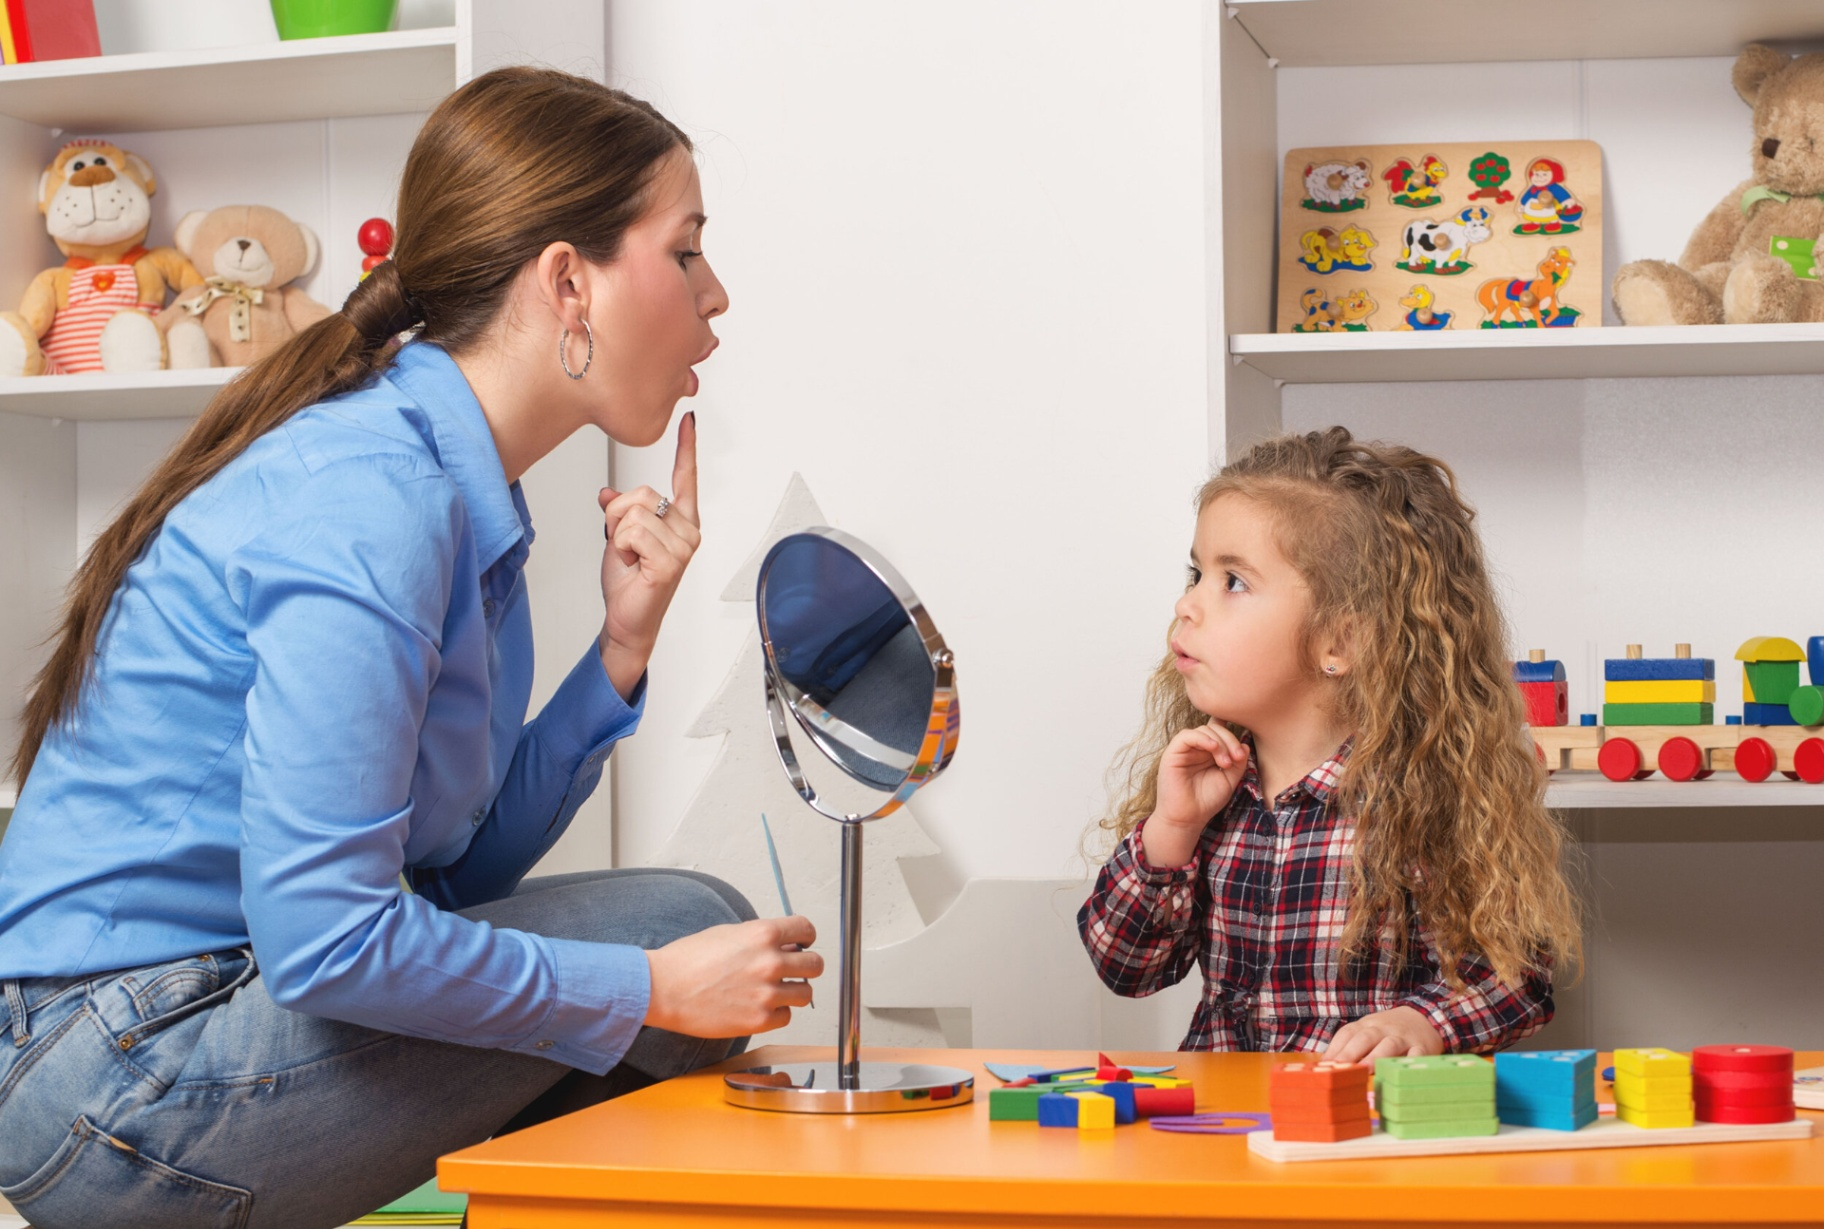 Learn How to Become a Speech Therapist